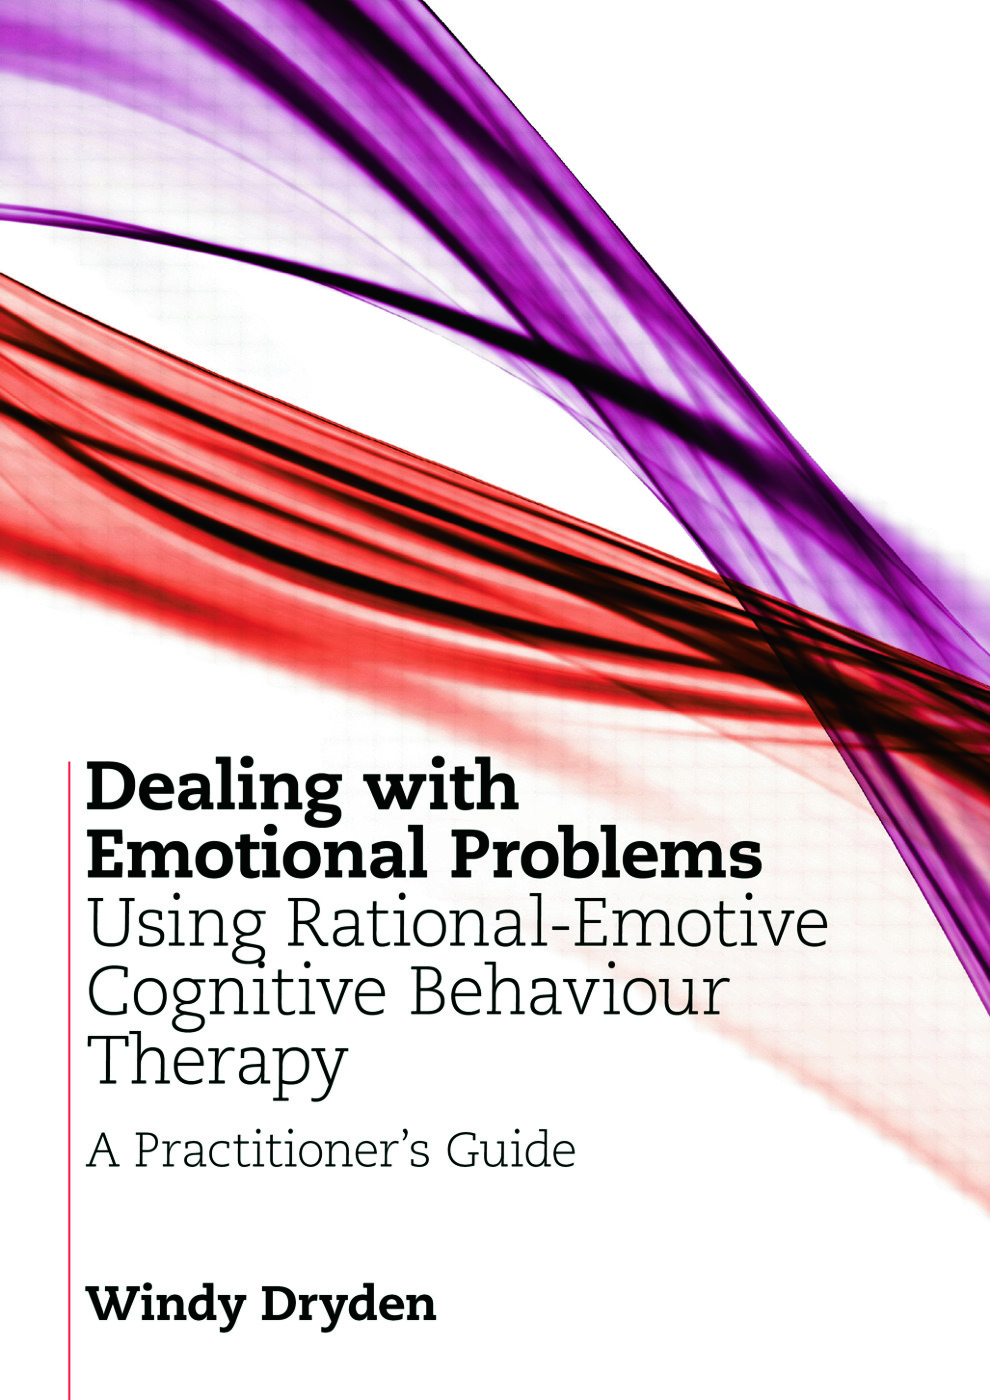 Dealing with Emotional Problems Using Rational-Emotive Cognitive Behaviour Therapy: A Practitioner's Guide (Paperback) book cover